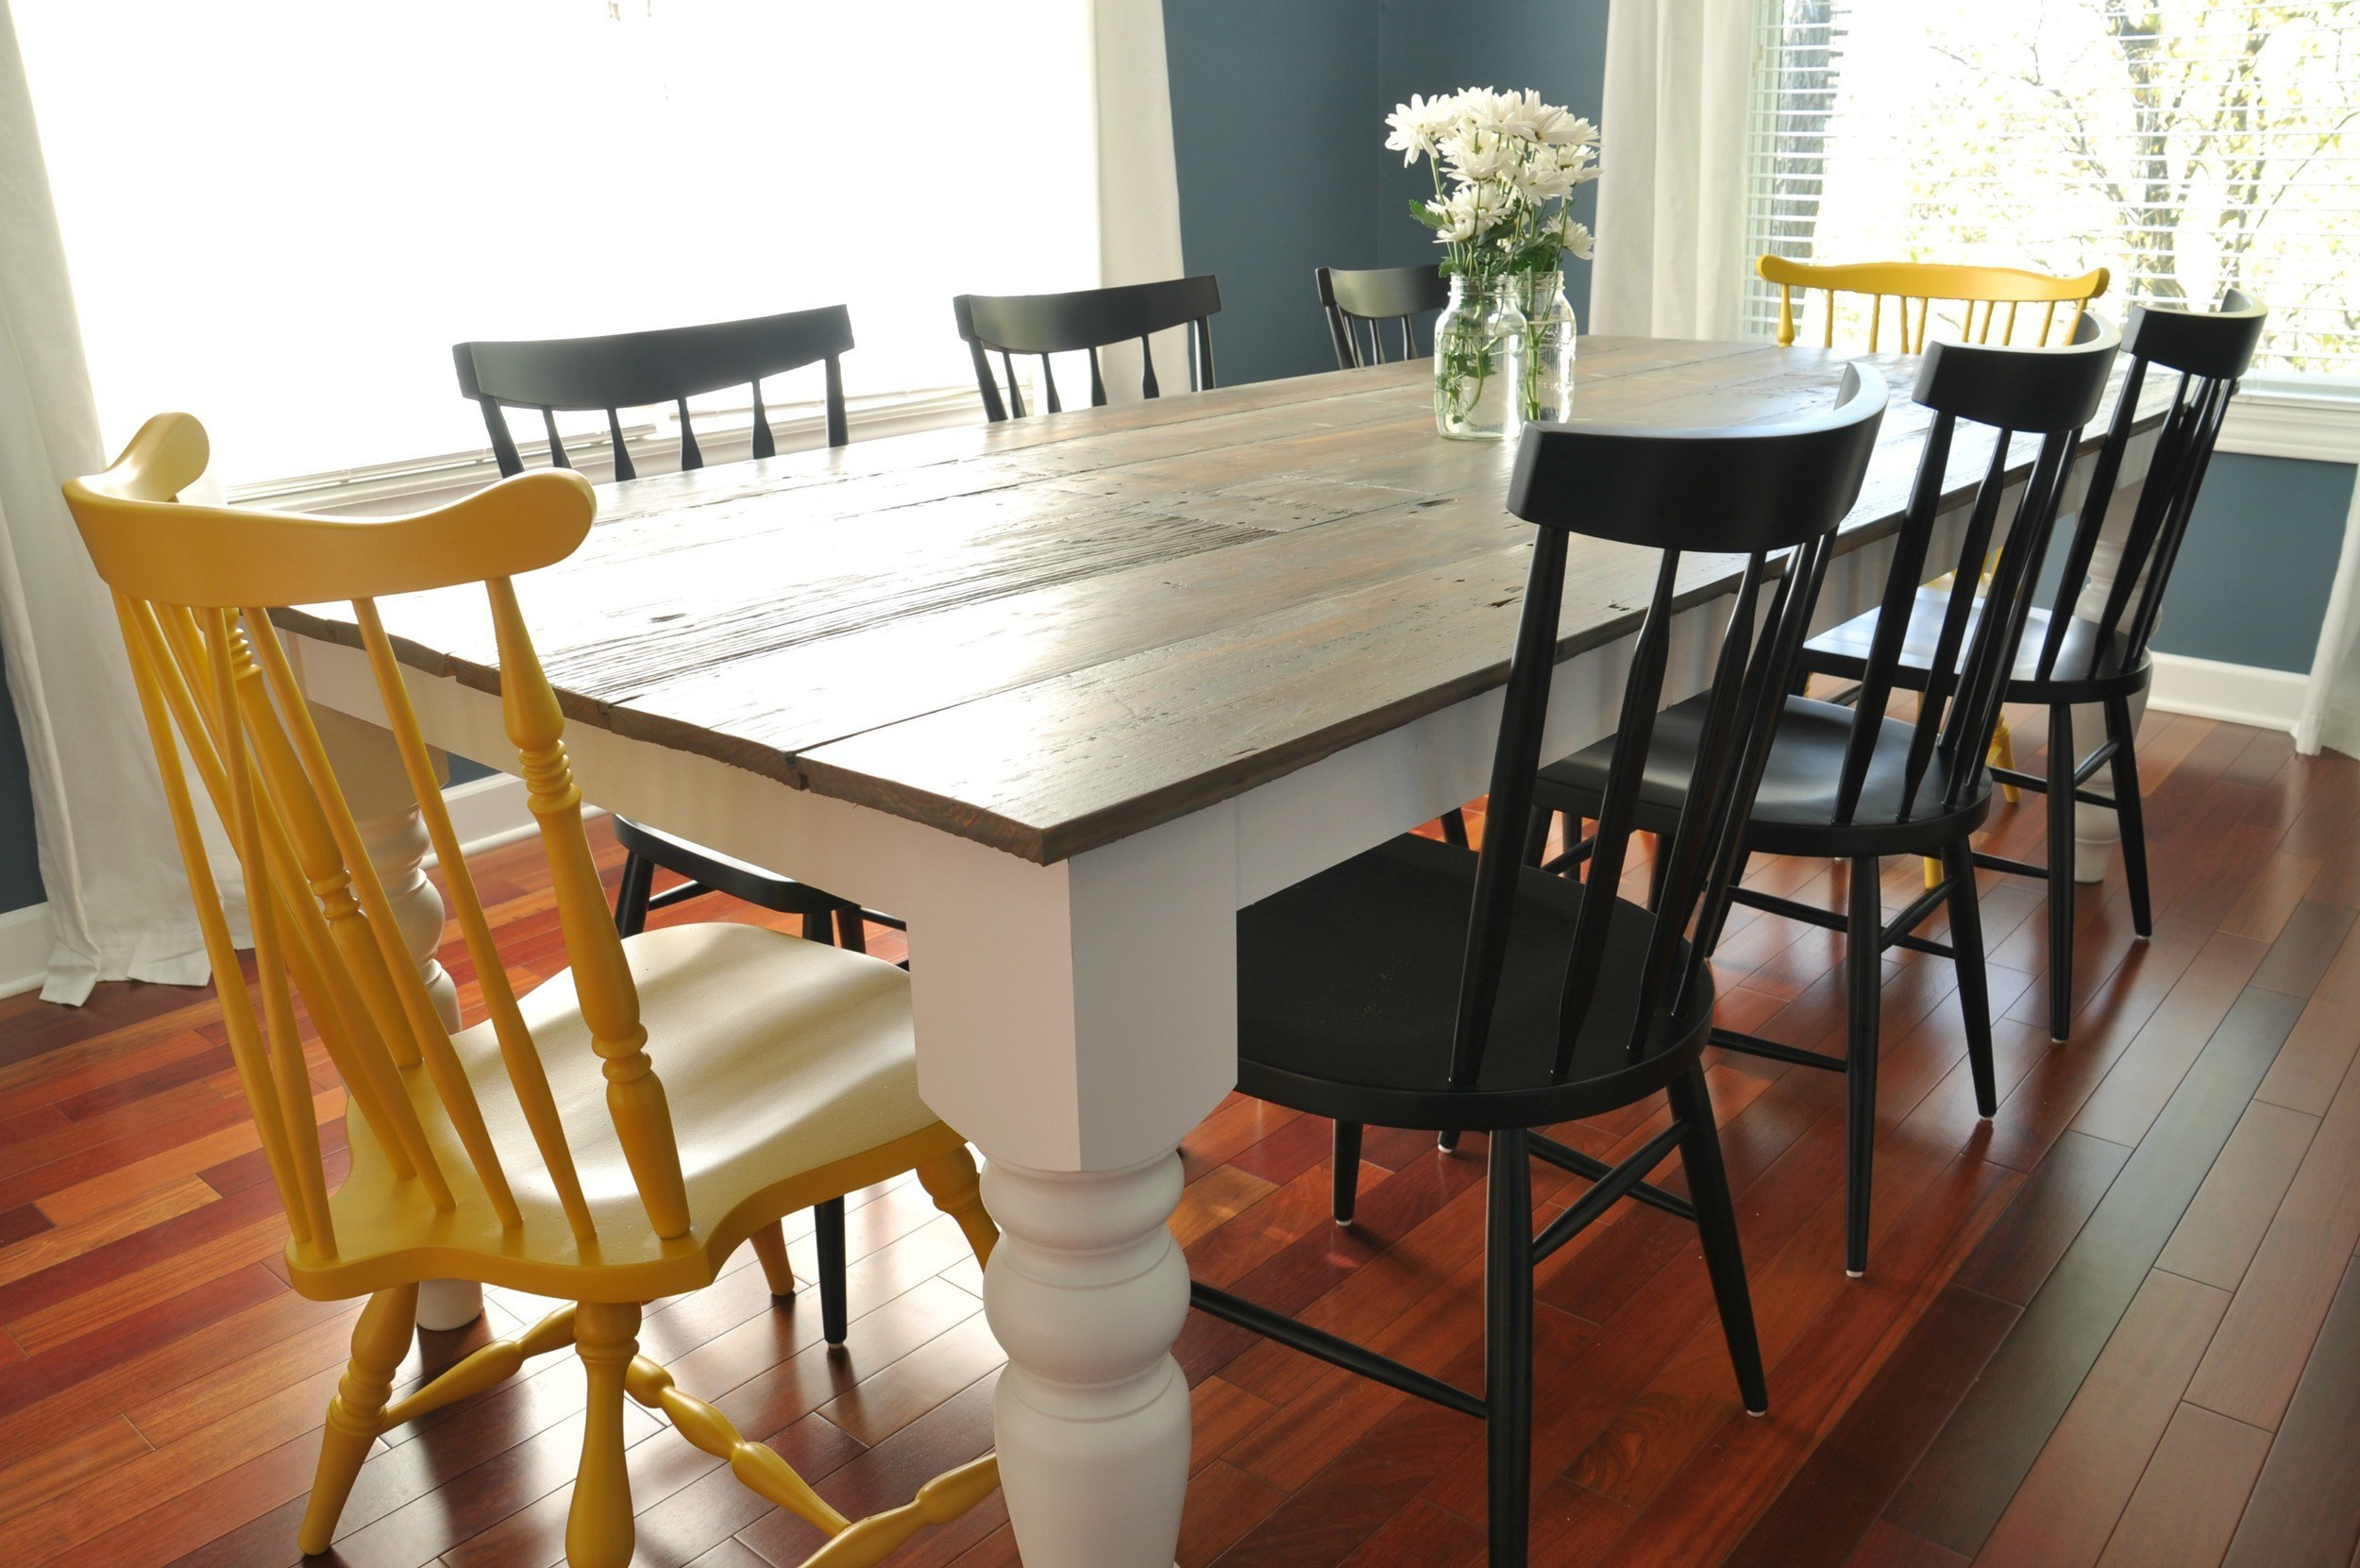 Best ideas about DIY Farmhouse Kitchen Table . Save or Pin 7 DIY Farmhouse Tables with Free Plans Now.